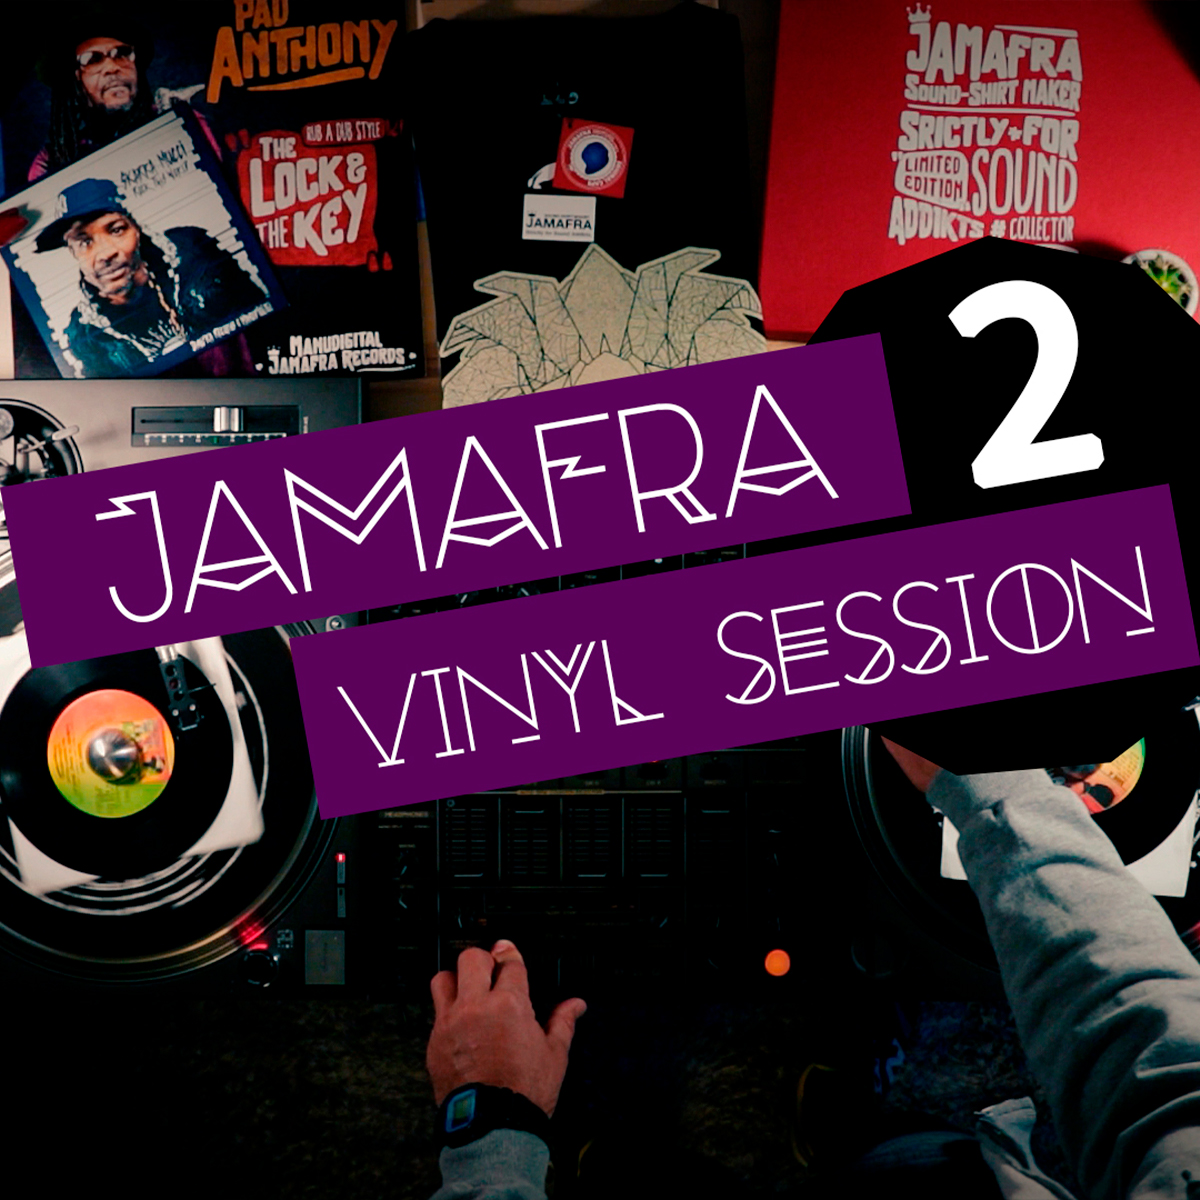 LIVE MIX : Jamafra Vinyl Session n°2